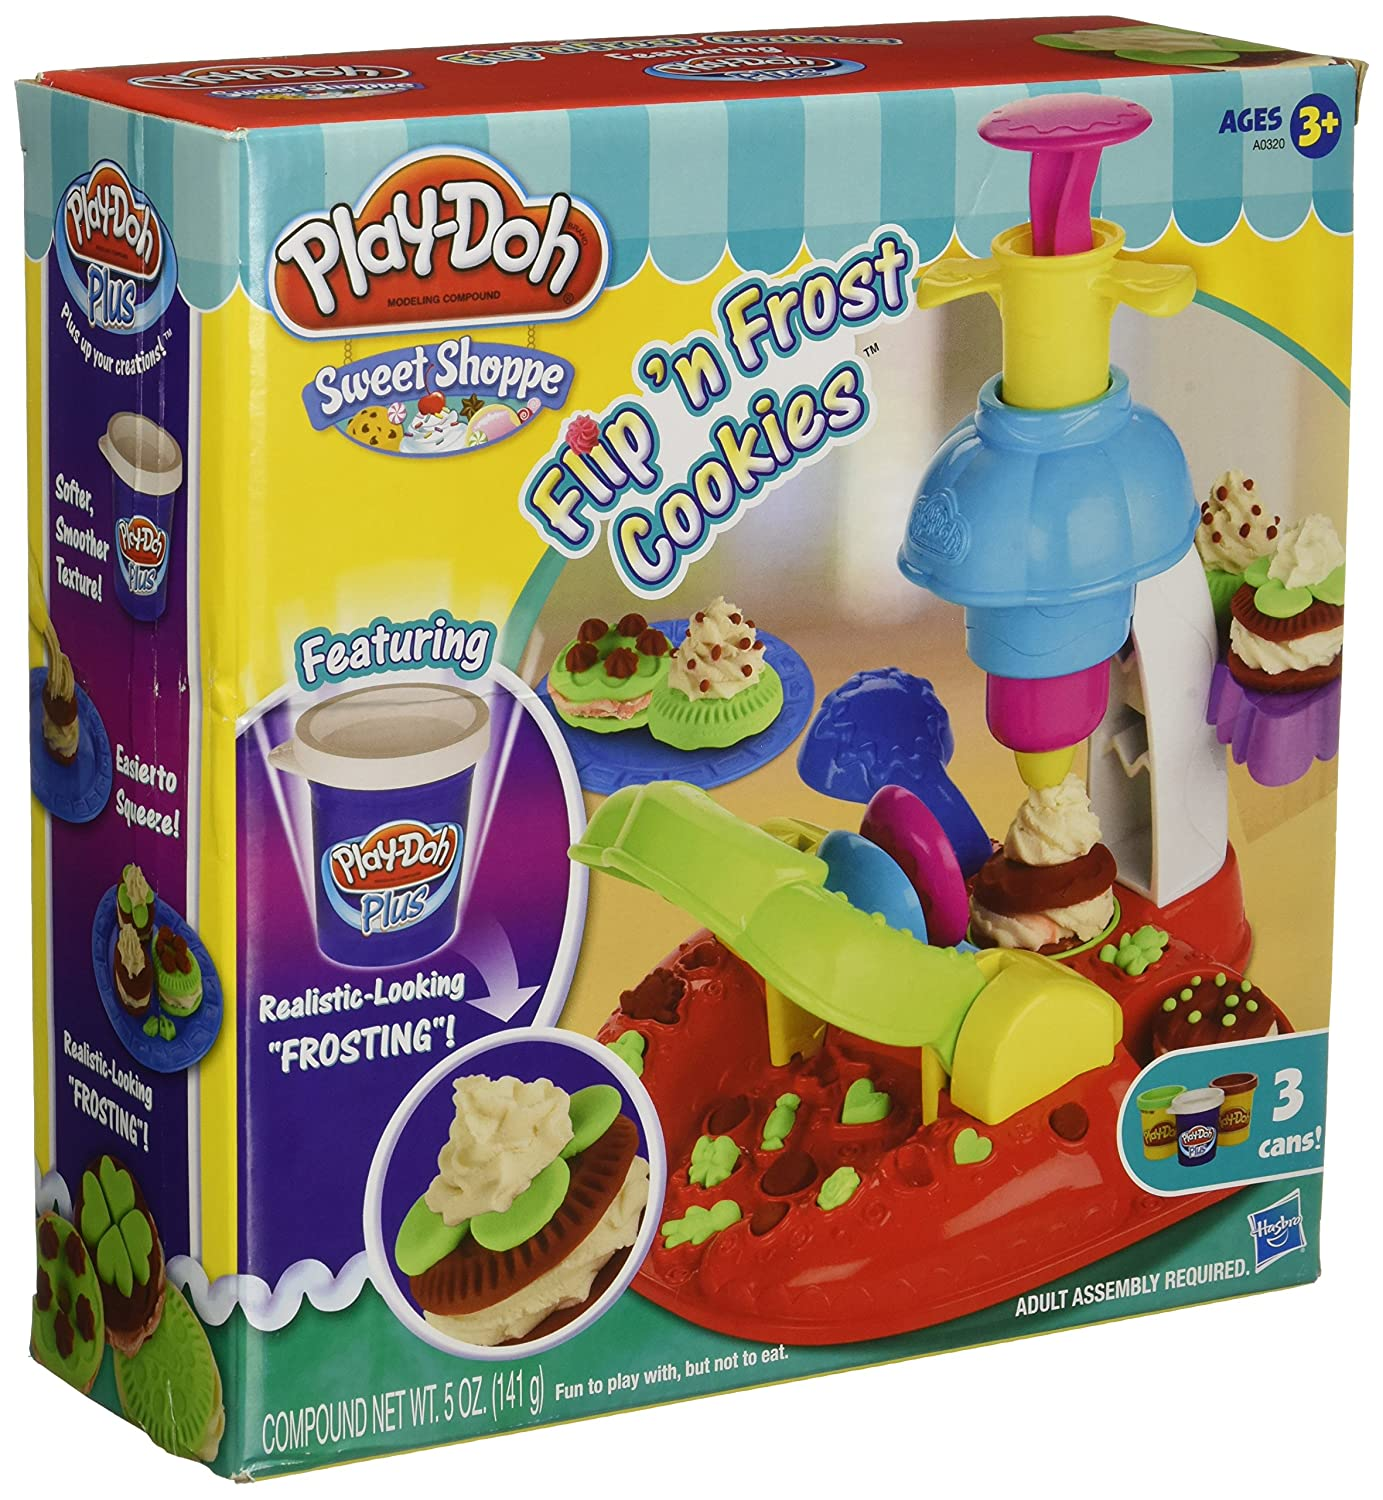 Top 8 Best Play Dough Sets for Boys Reviews in 2020 4